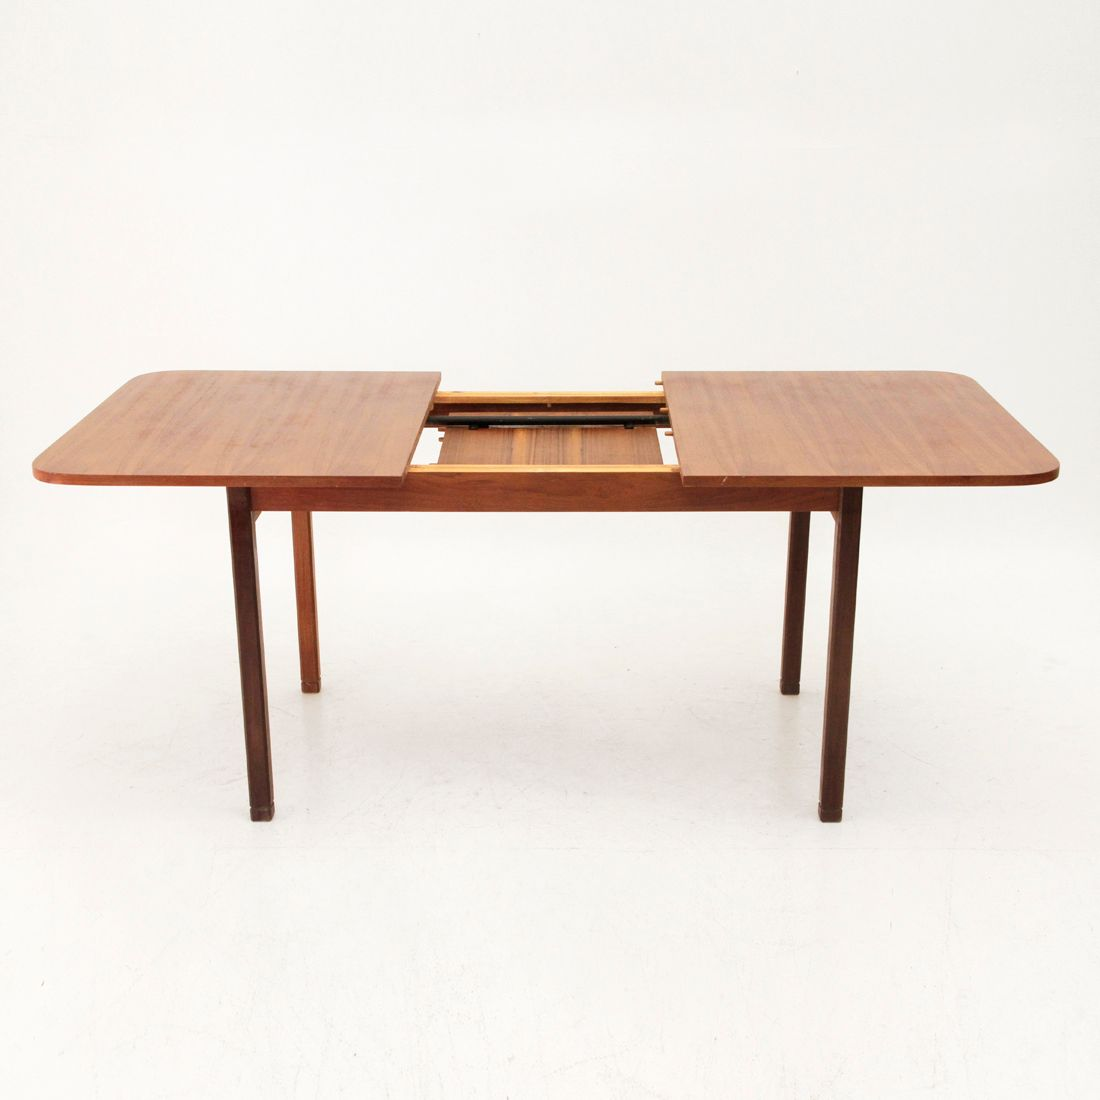 Italian extensible dining table 1960s for sale at pamono for Italian dining table